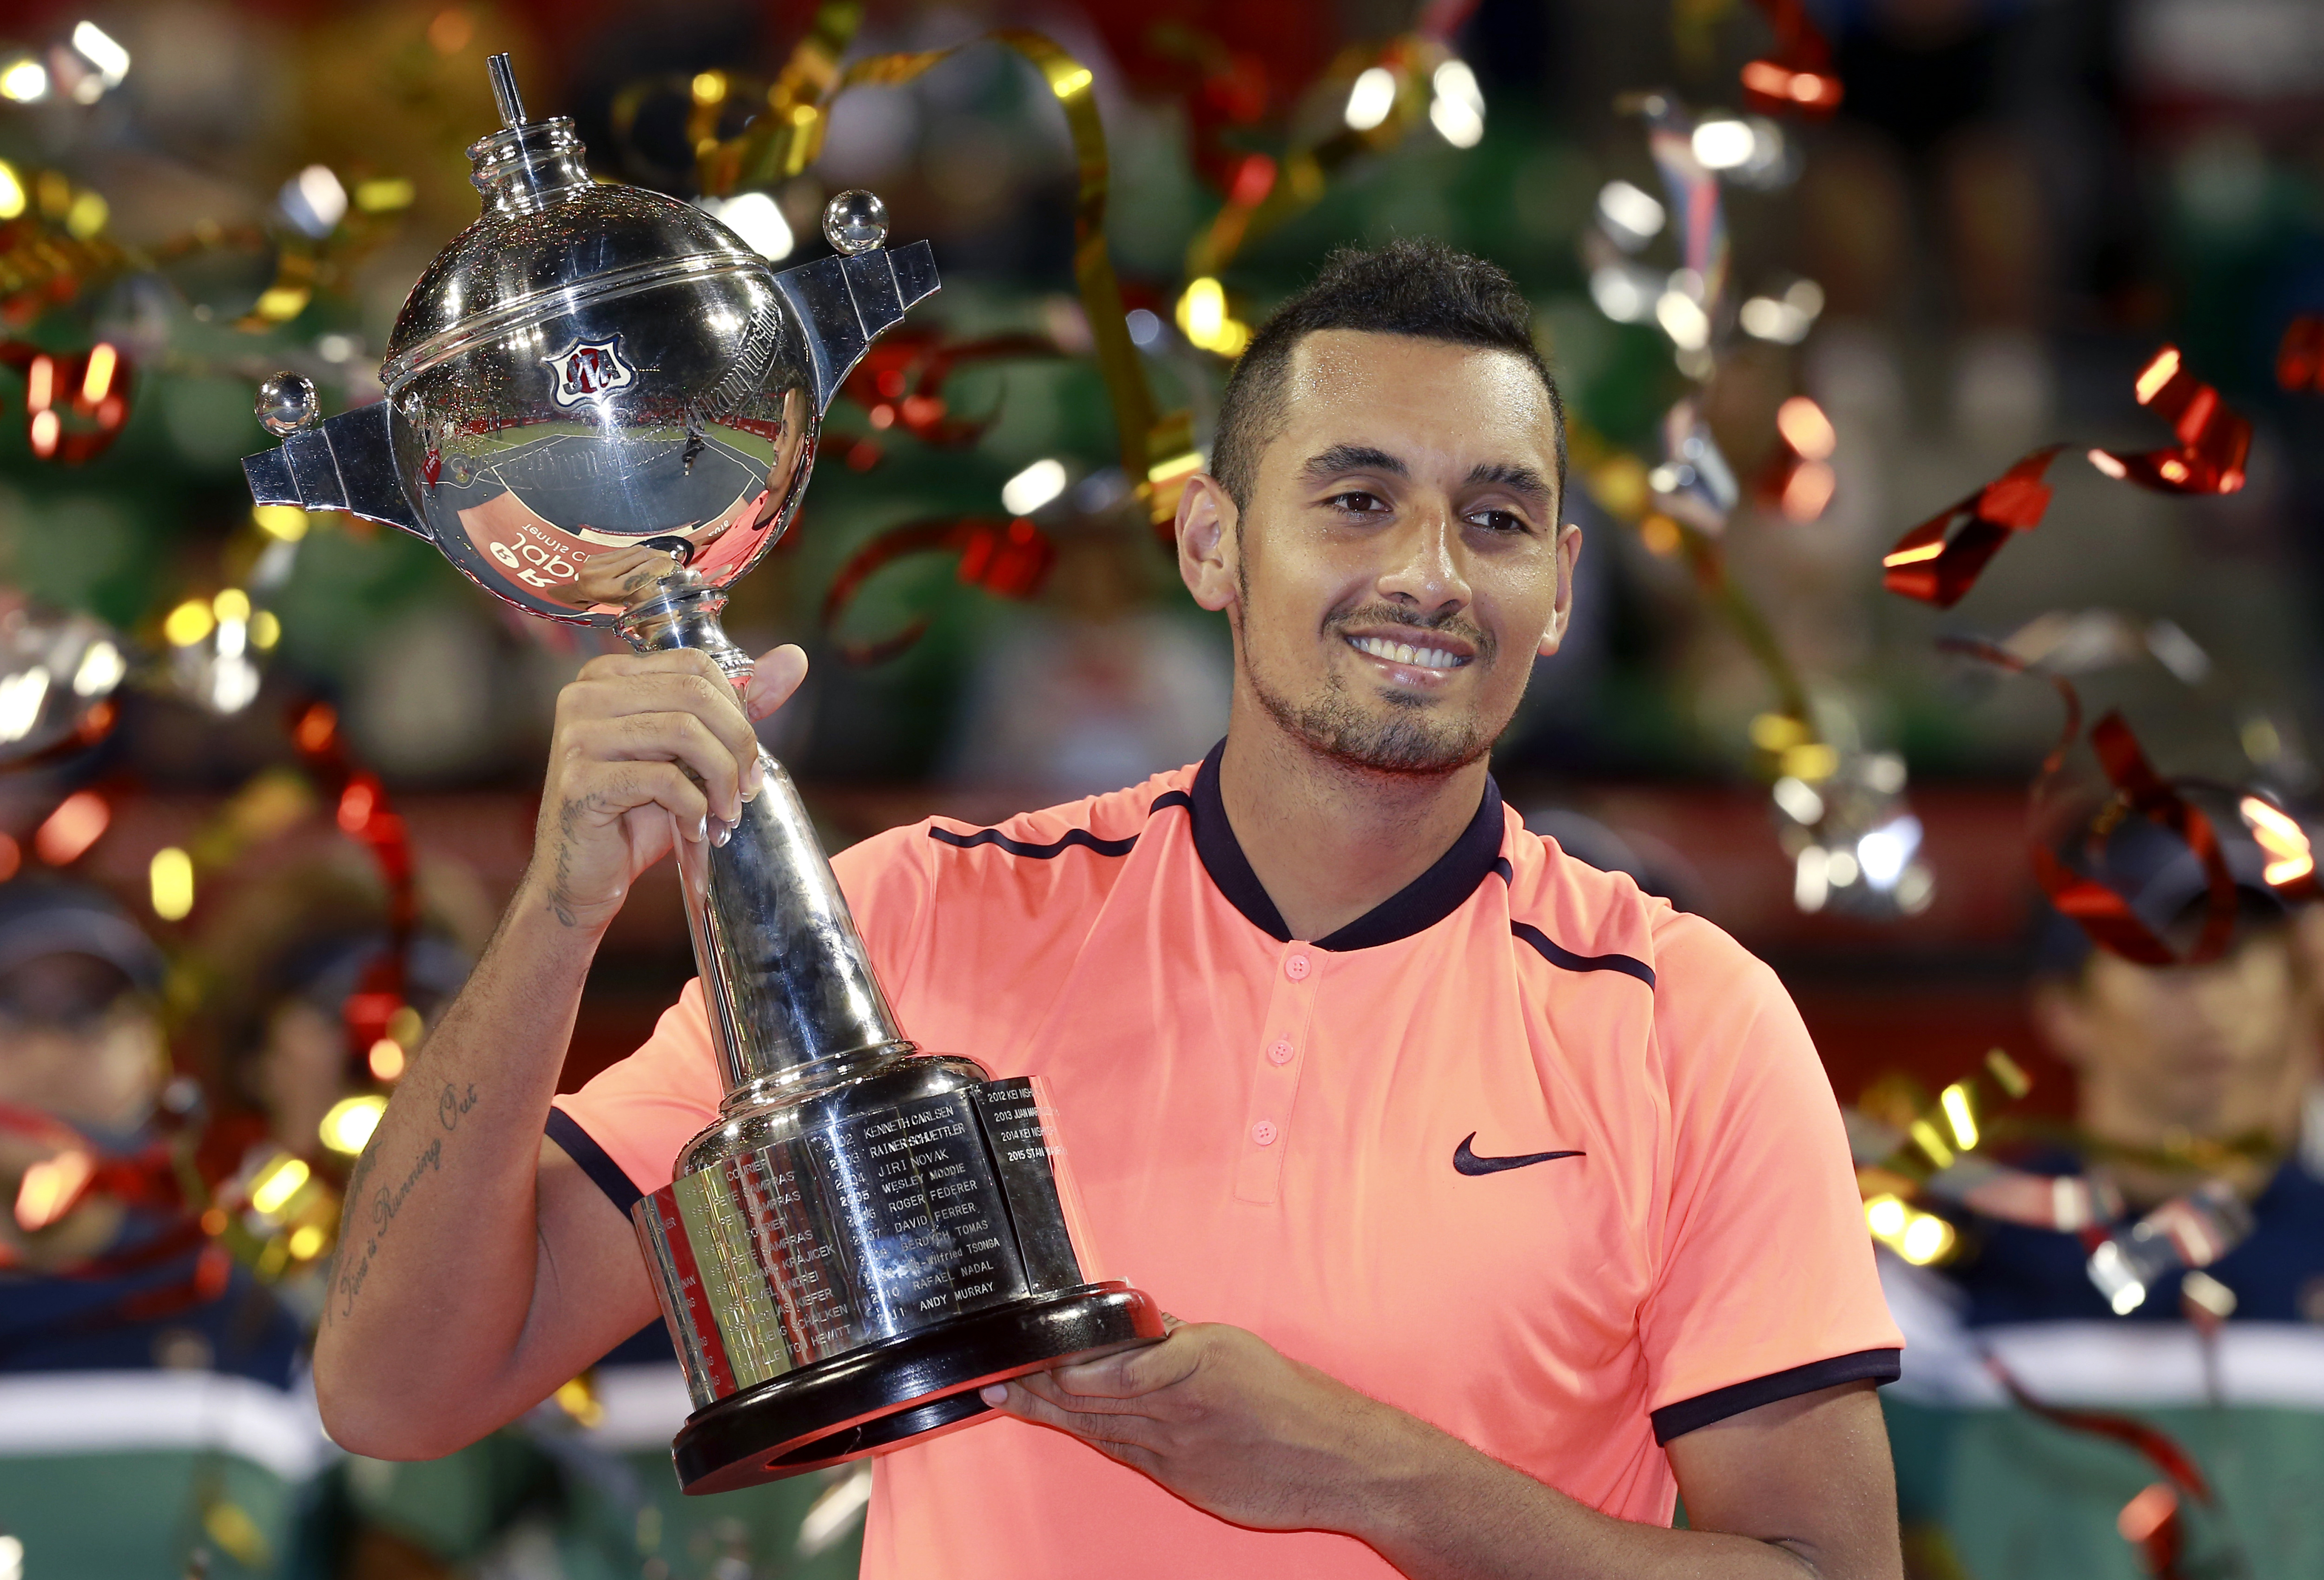 Nick Kyrgios of Australia poses after beating David Goffin of Belgium at the final match of Japan Open tennis tournament in Tokyo, Sunday, Oct. 9, 2016. (AP Photo/Shizuo Kambayashi)